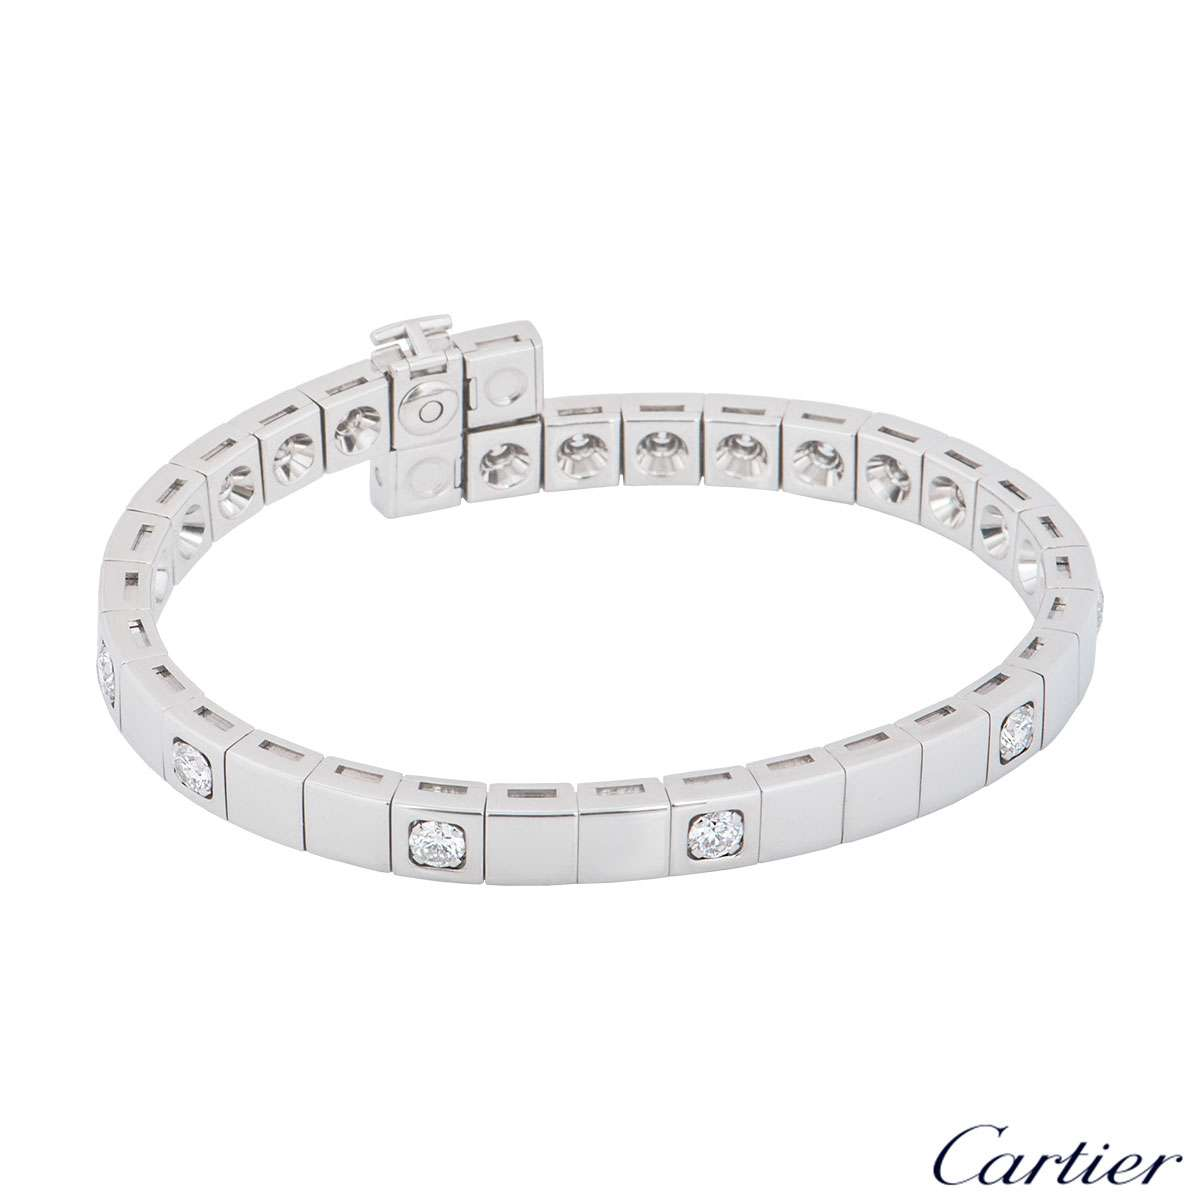 Cartier Tectonique Diamond White Gold Bracelet 3.15ct